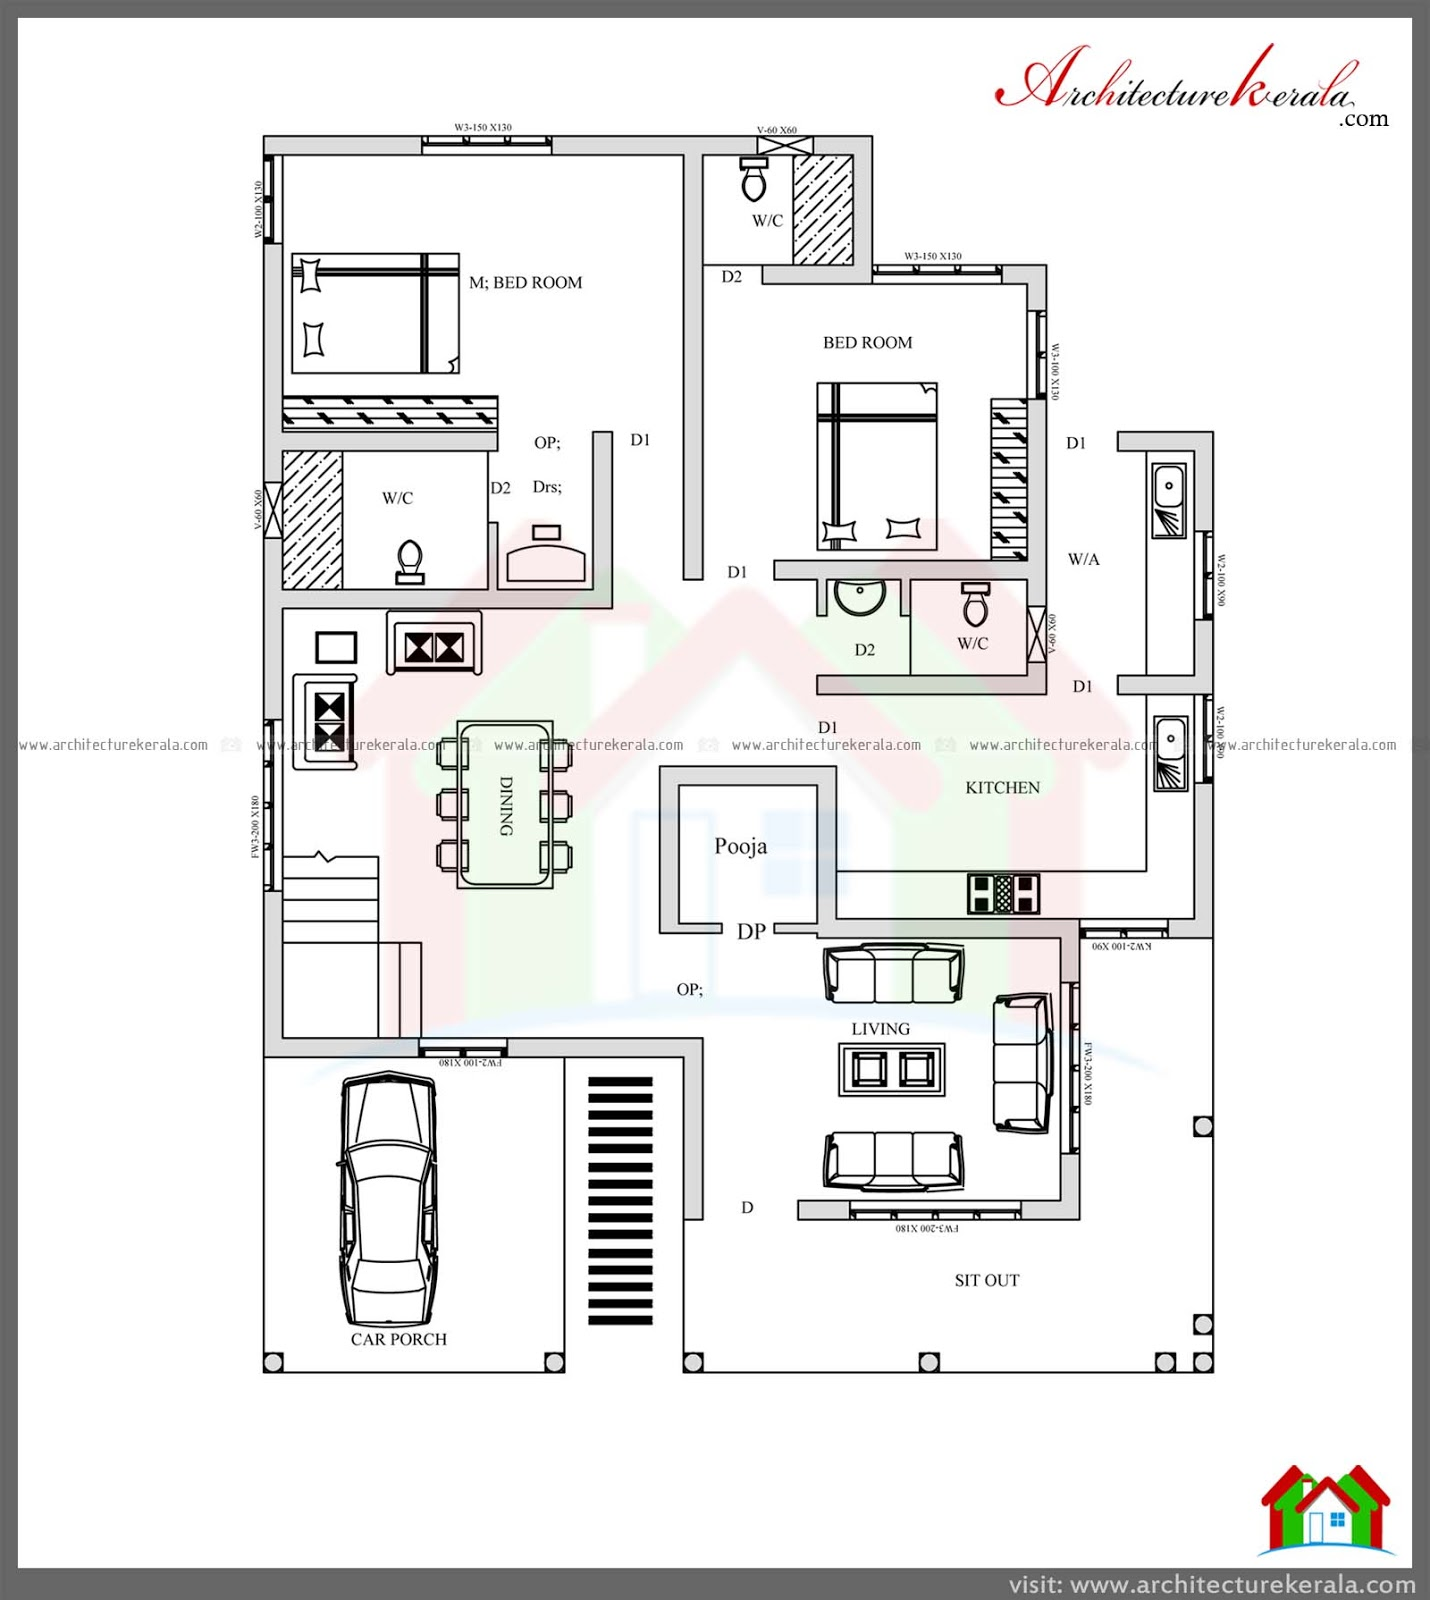 Stunning 4 bedroom kerala home design with pooja room free for Kerala style 2 bedroom house plans